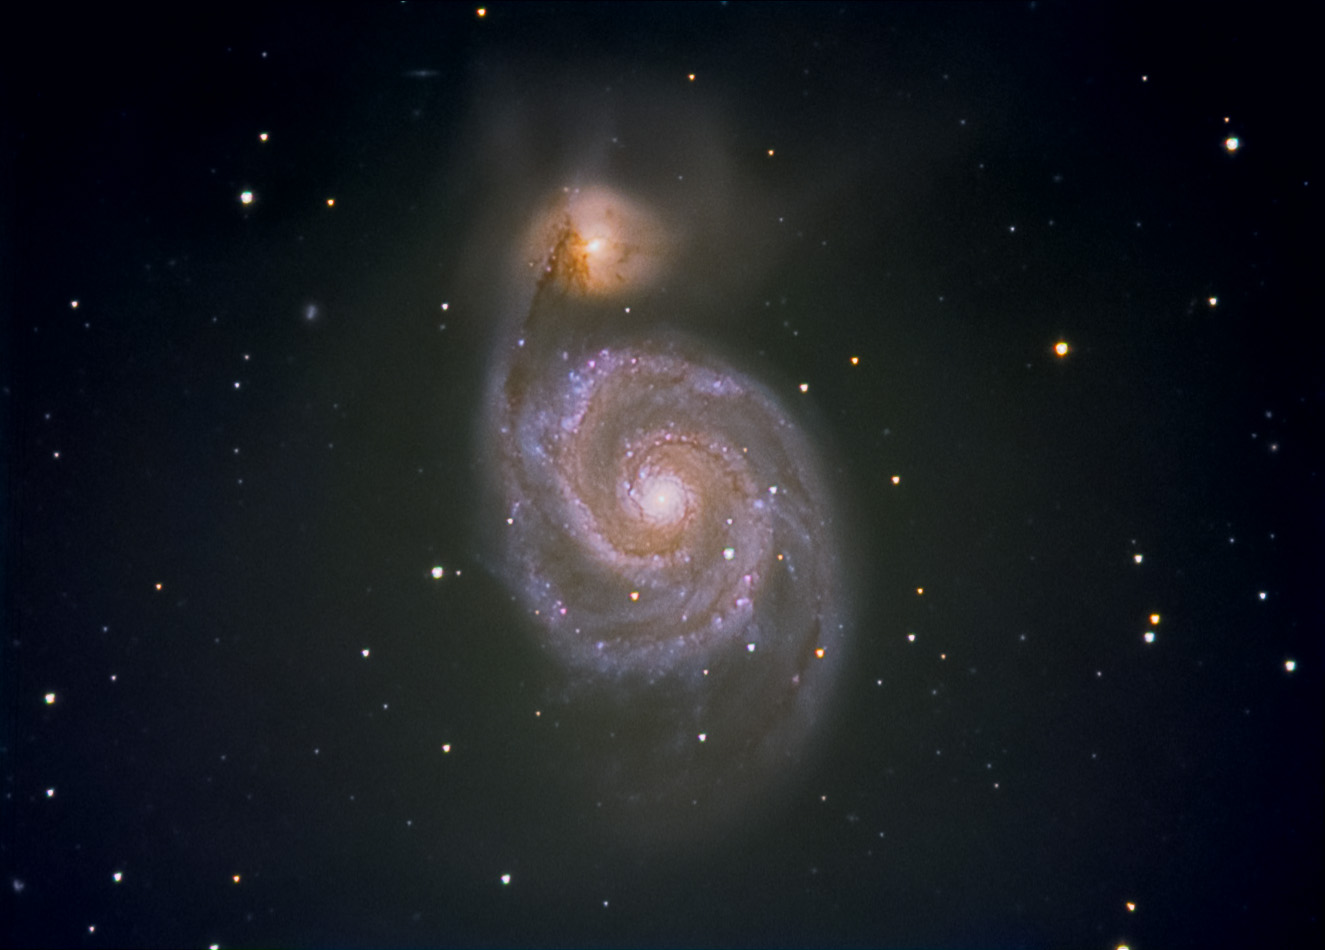 Swirls in Space: Whirlpool Galaxy Shines in Skywatcher Photo